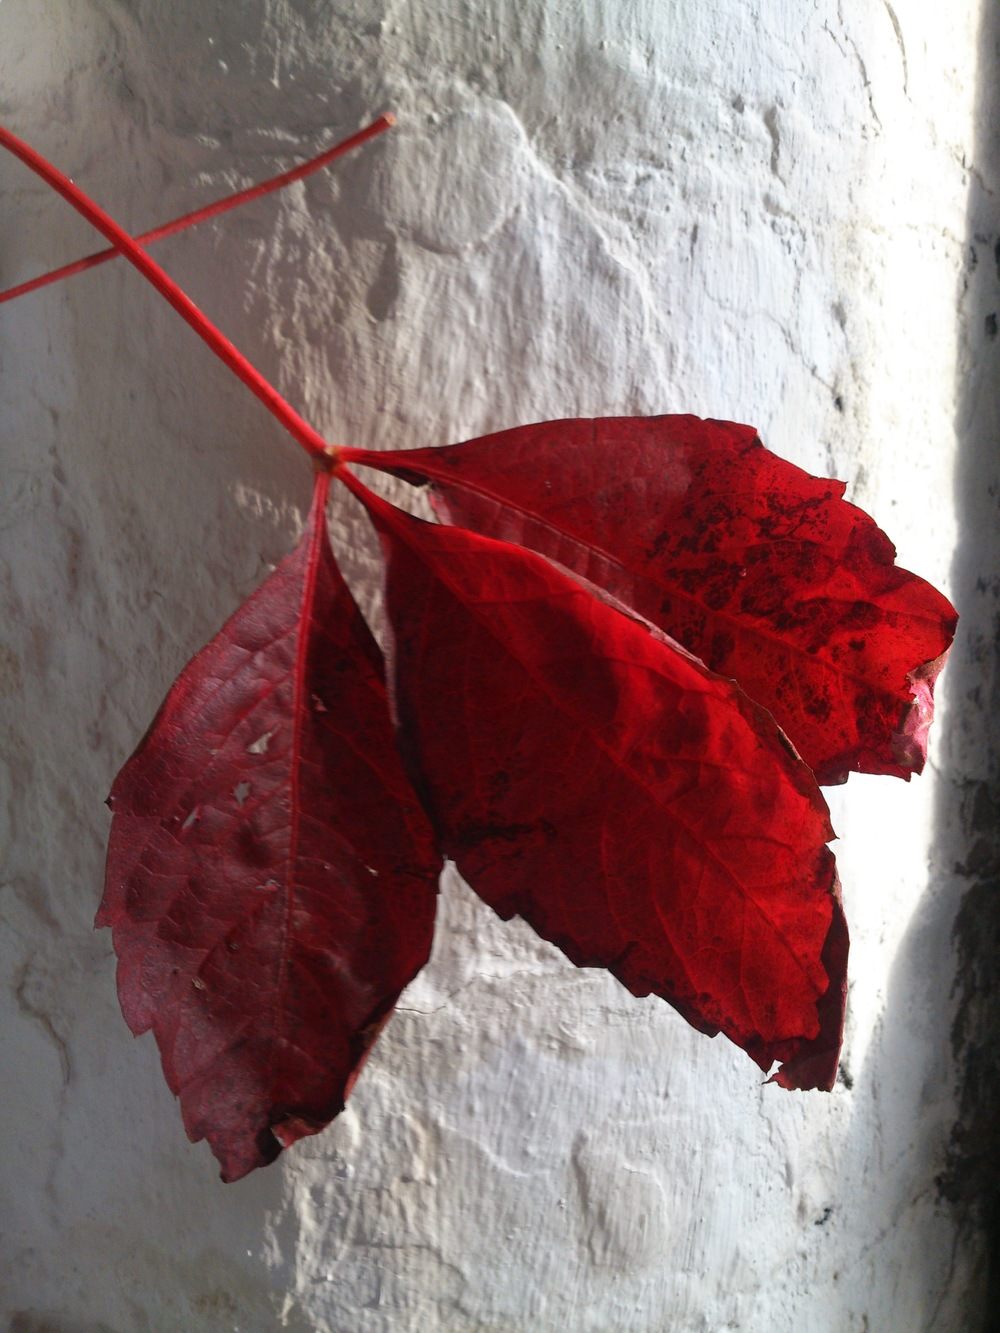 Red clematis leaves remind me of home...